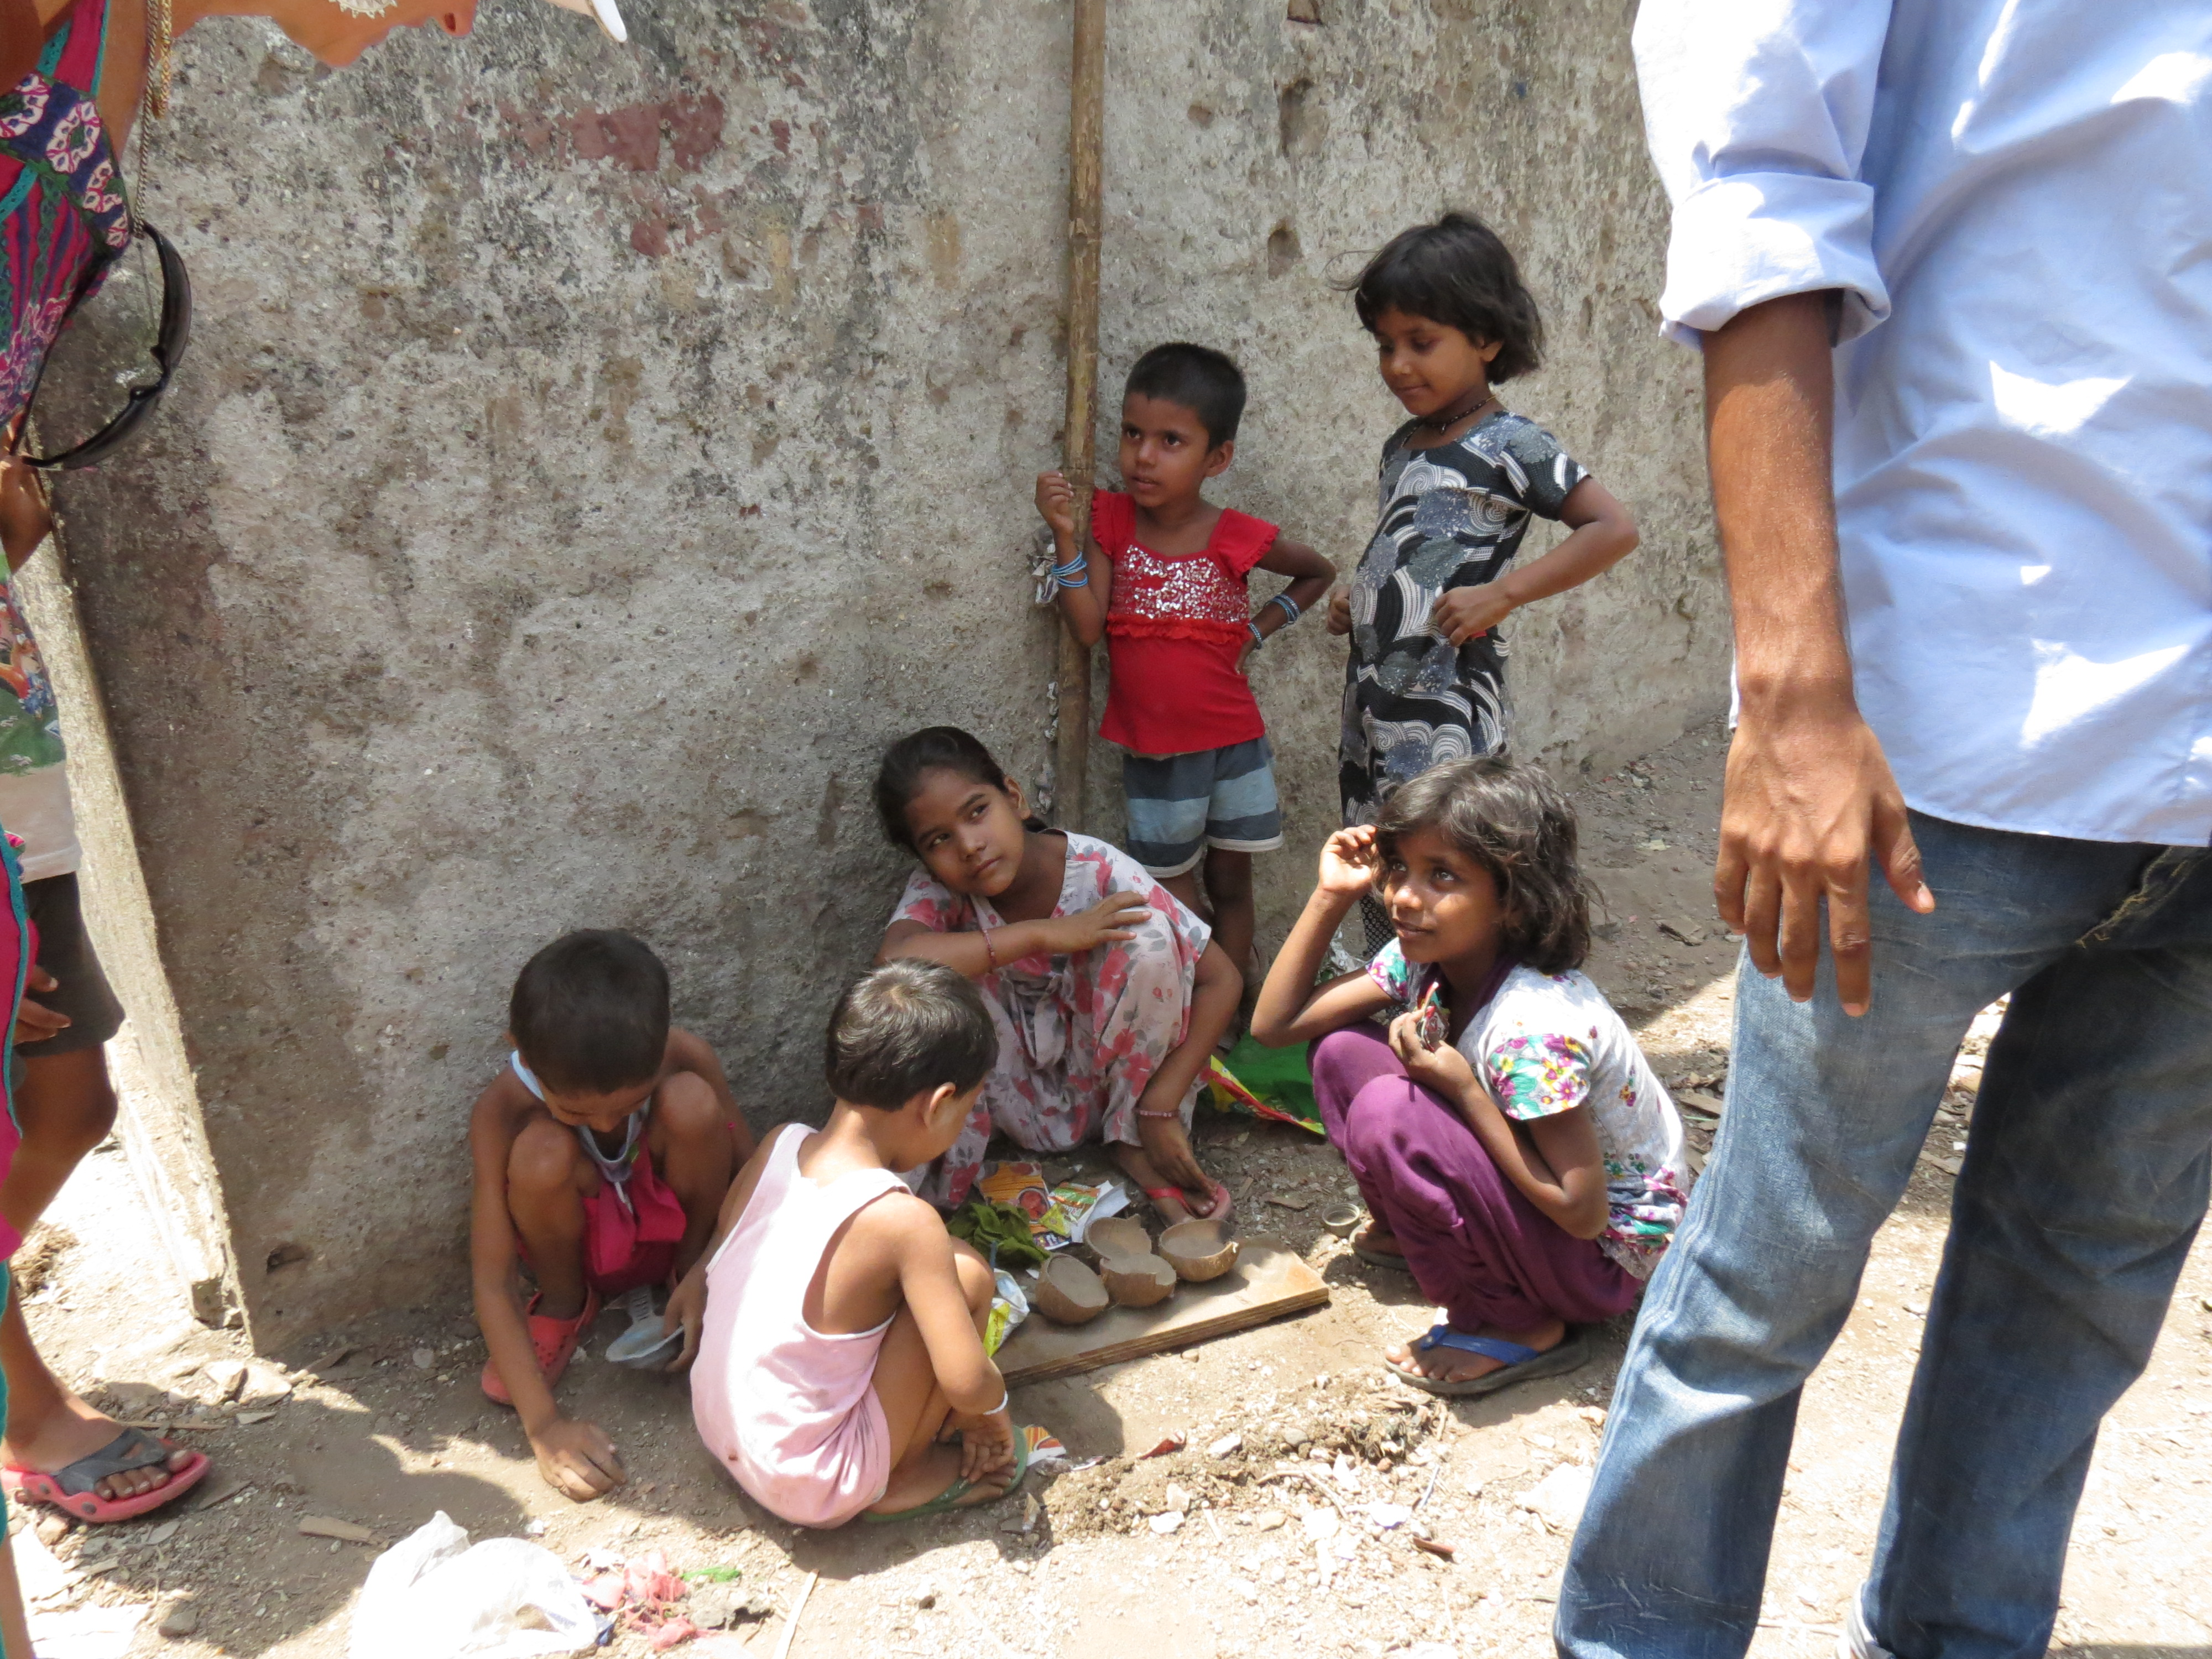 a visit to a slum A guided tour of mumbai's teeming dharavi slum raises moral questions for visitors  is slum tourism in india ethical  we went on to visit a cloth-dyer,.